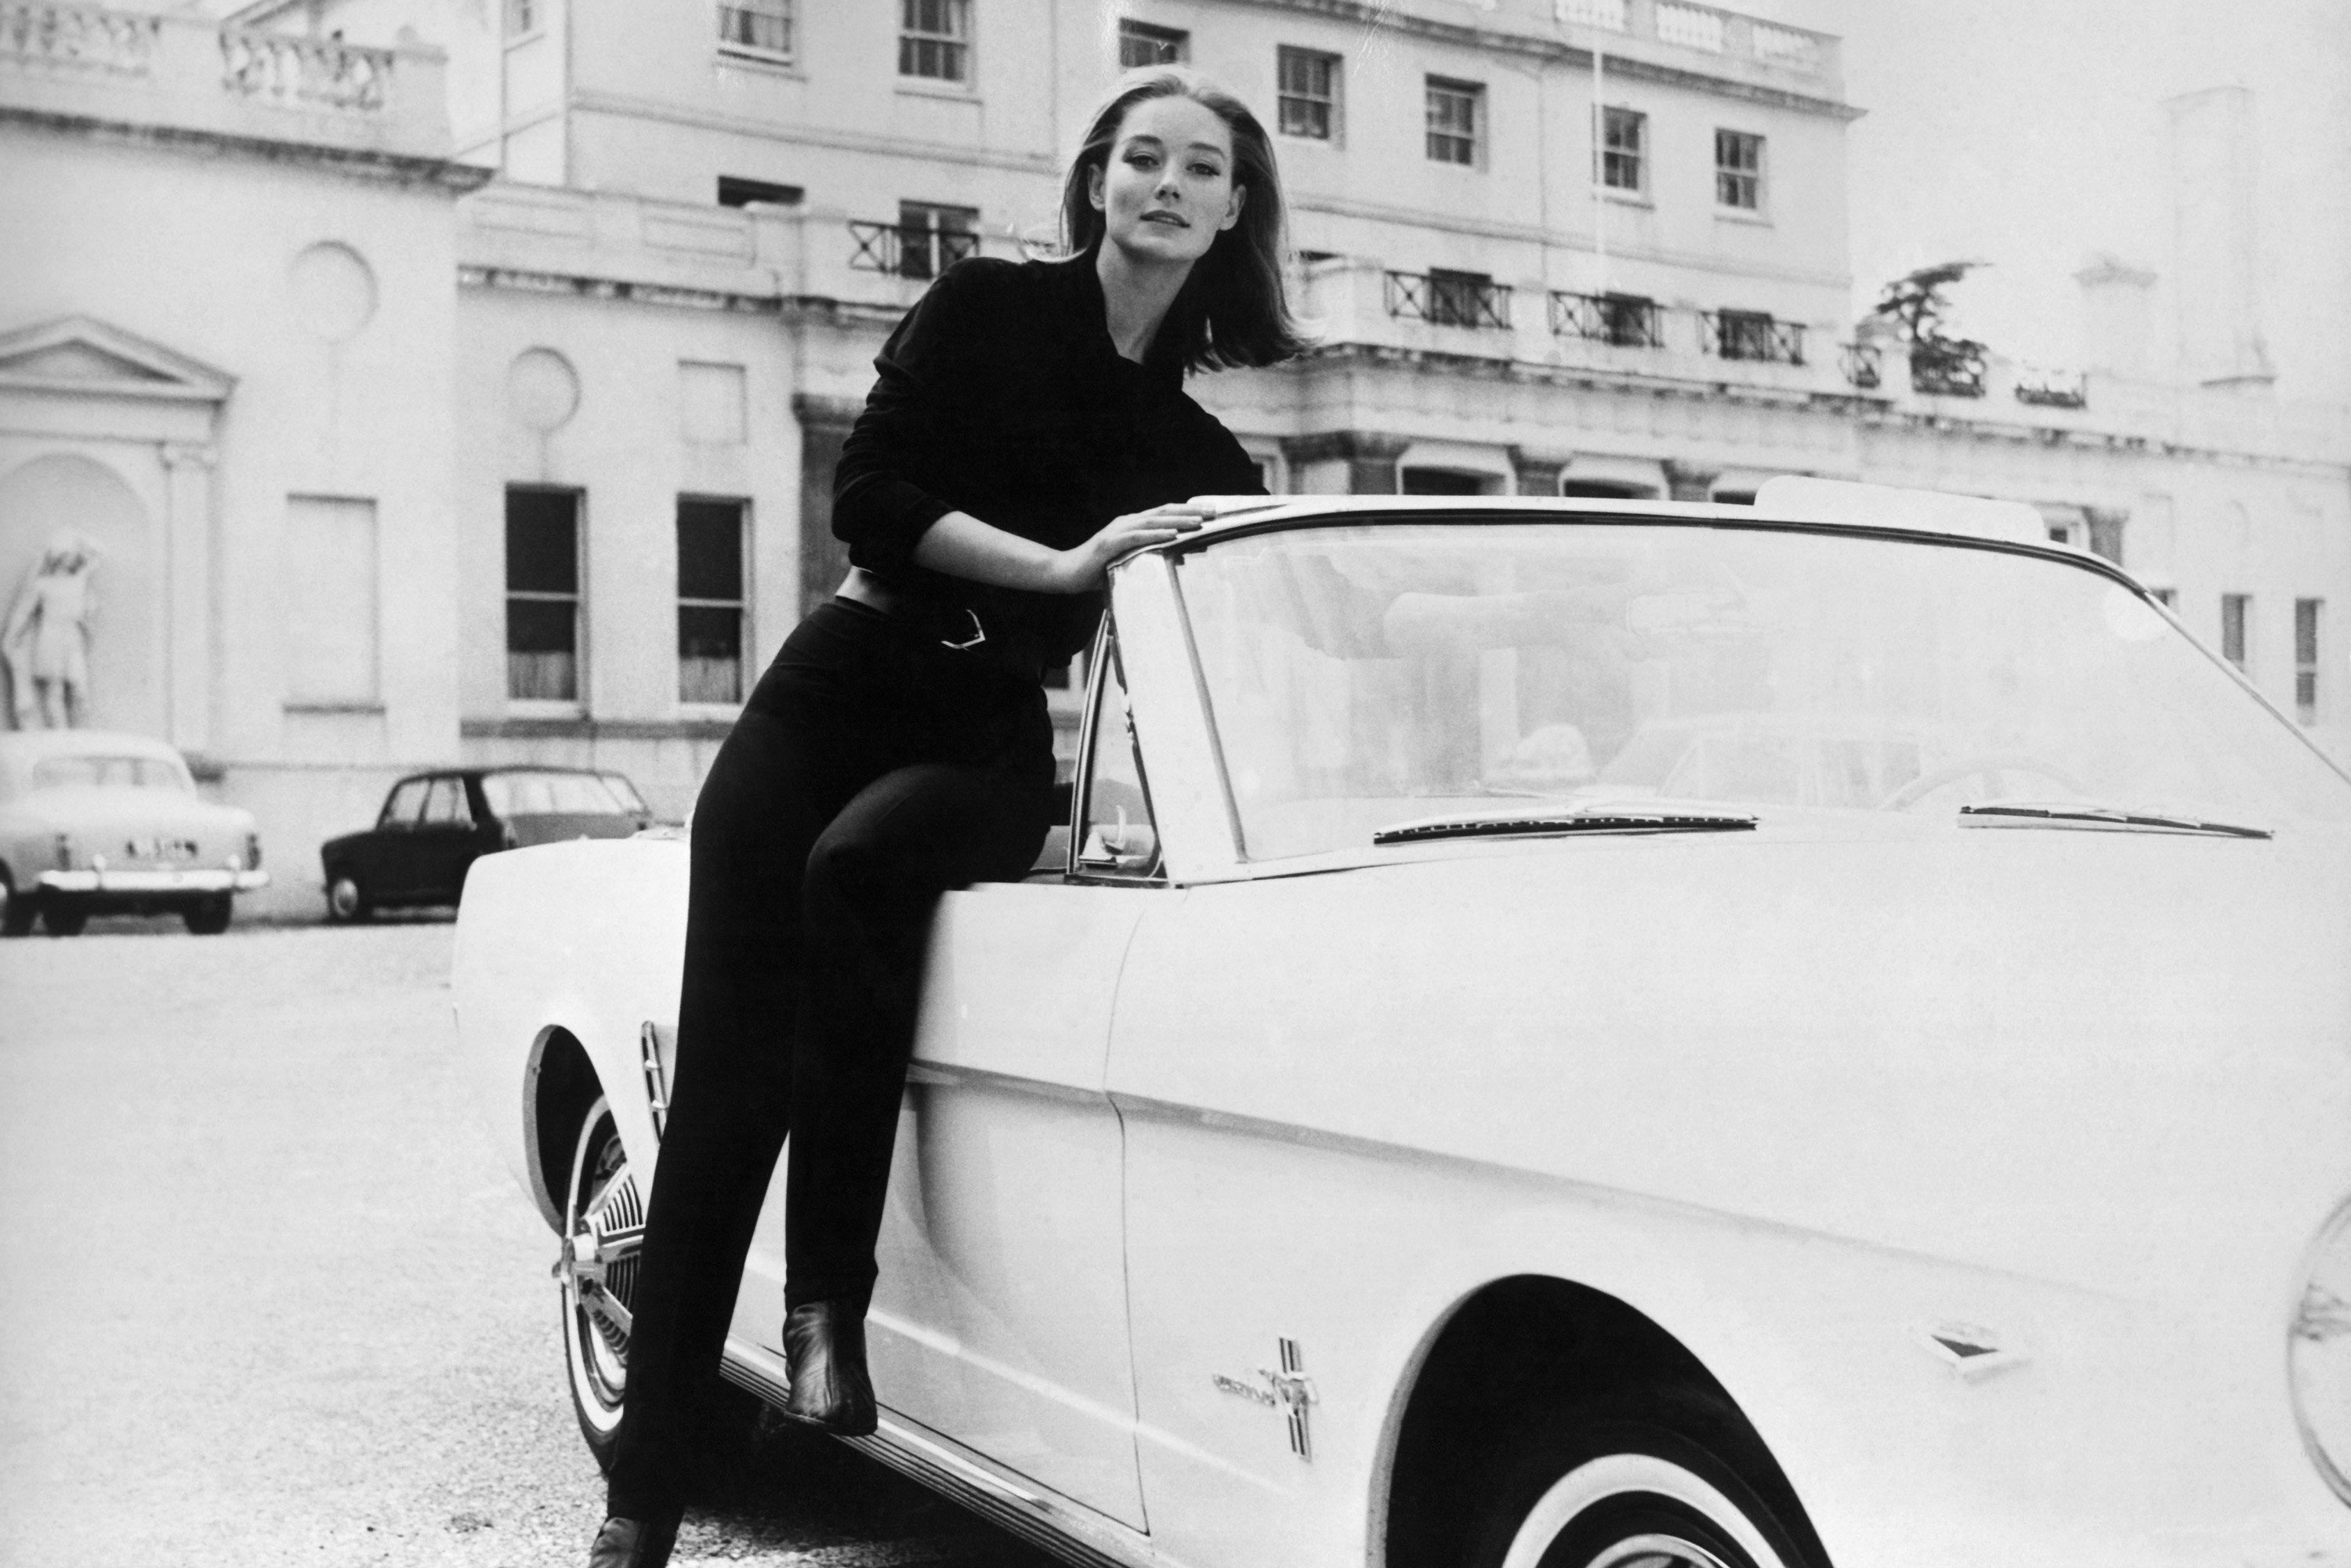 Former Bond girl Tania Mallet dead at 77